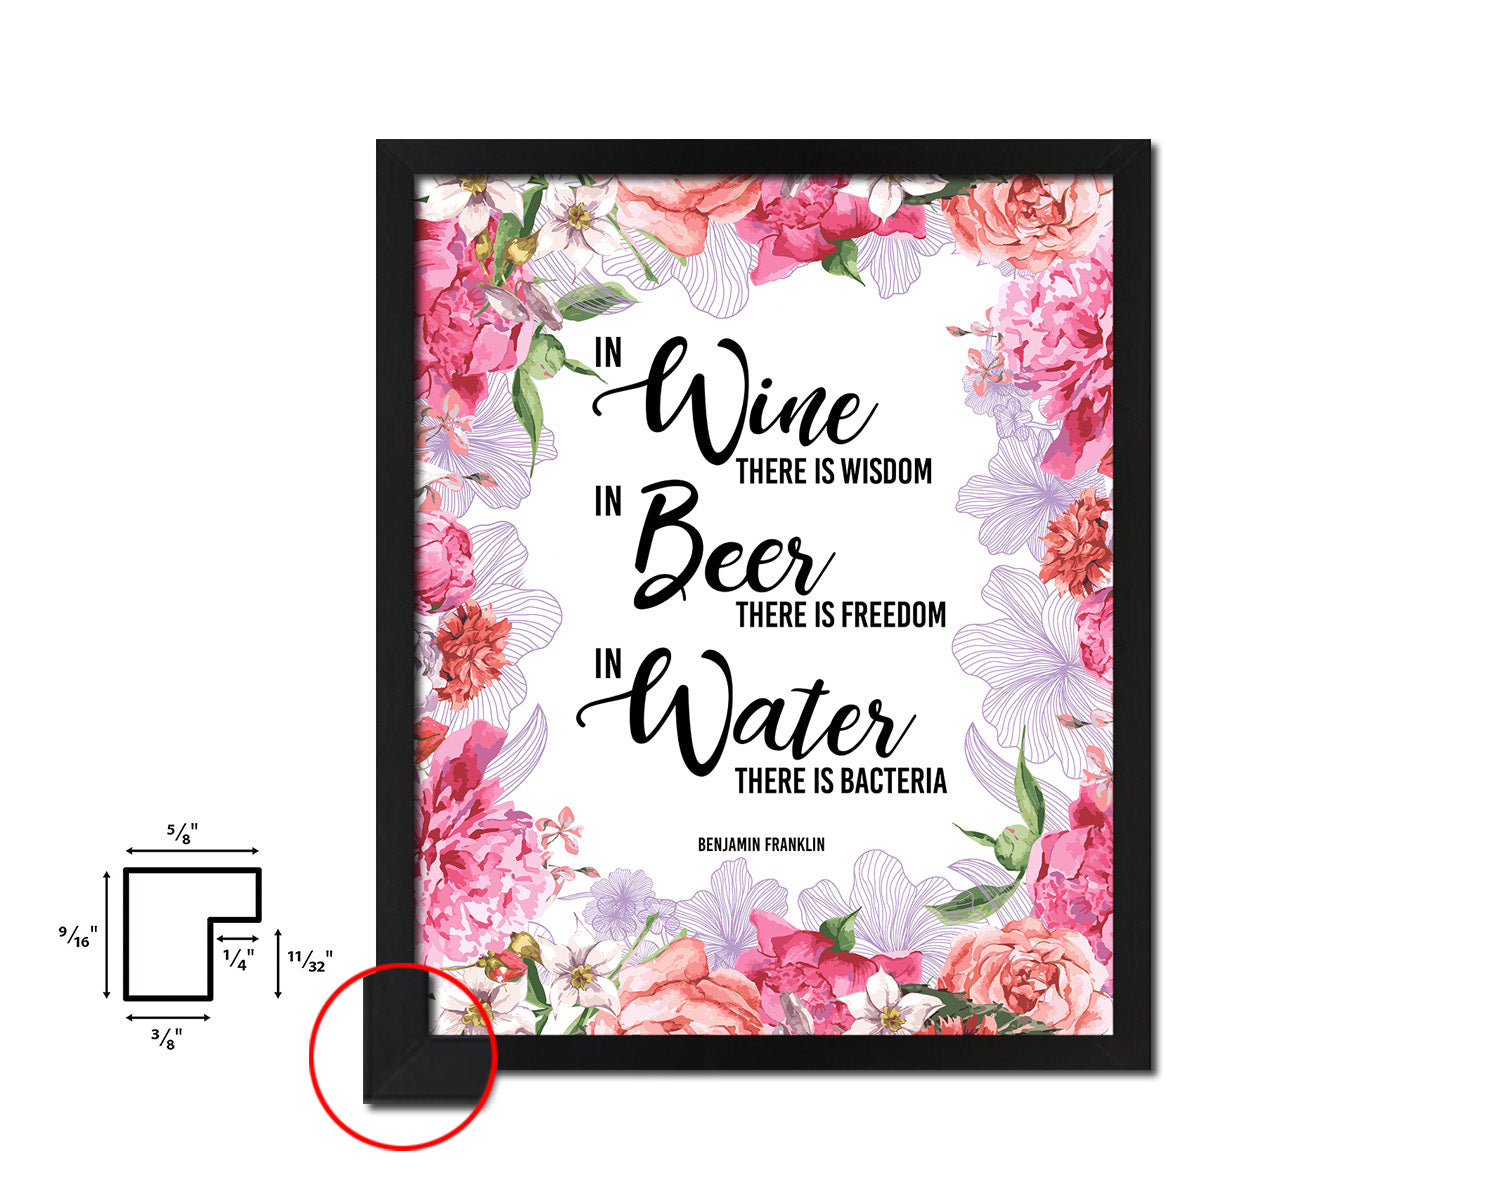 In wine there is wisdom, In beer there is freedom Framed Artwork Print Wall Decor Art Gifts